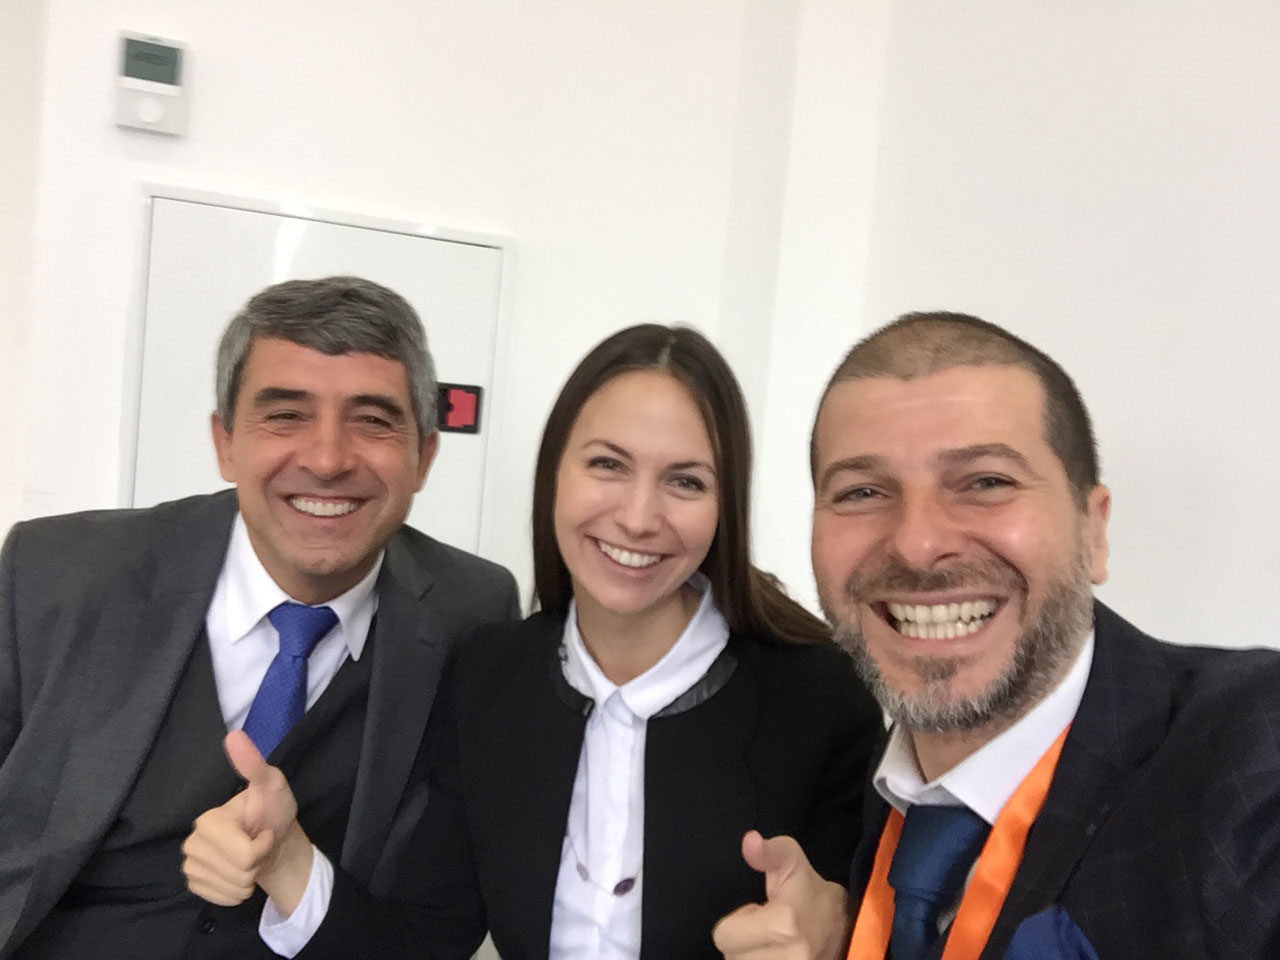 Plamen Russev with the President of Bulgaria (2012-2017) Rosen Plevneliev and the member of European parliament - Eva Maydell (Paunova) in Sofia